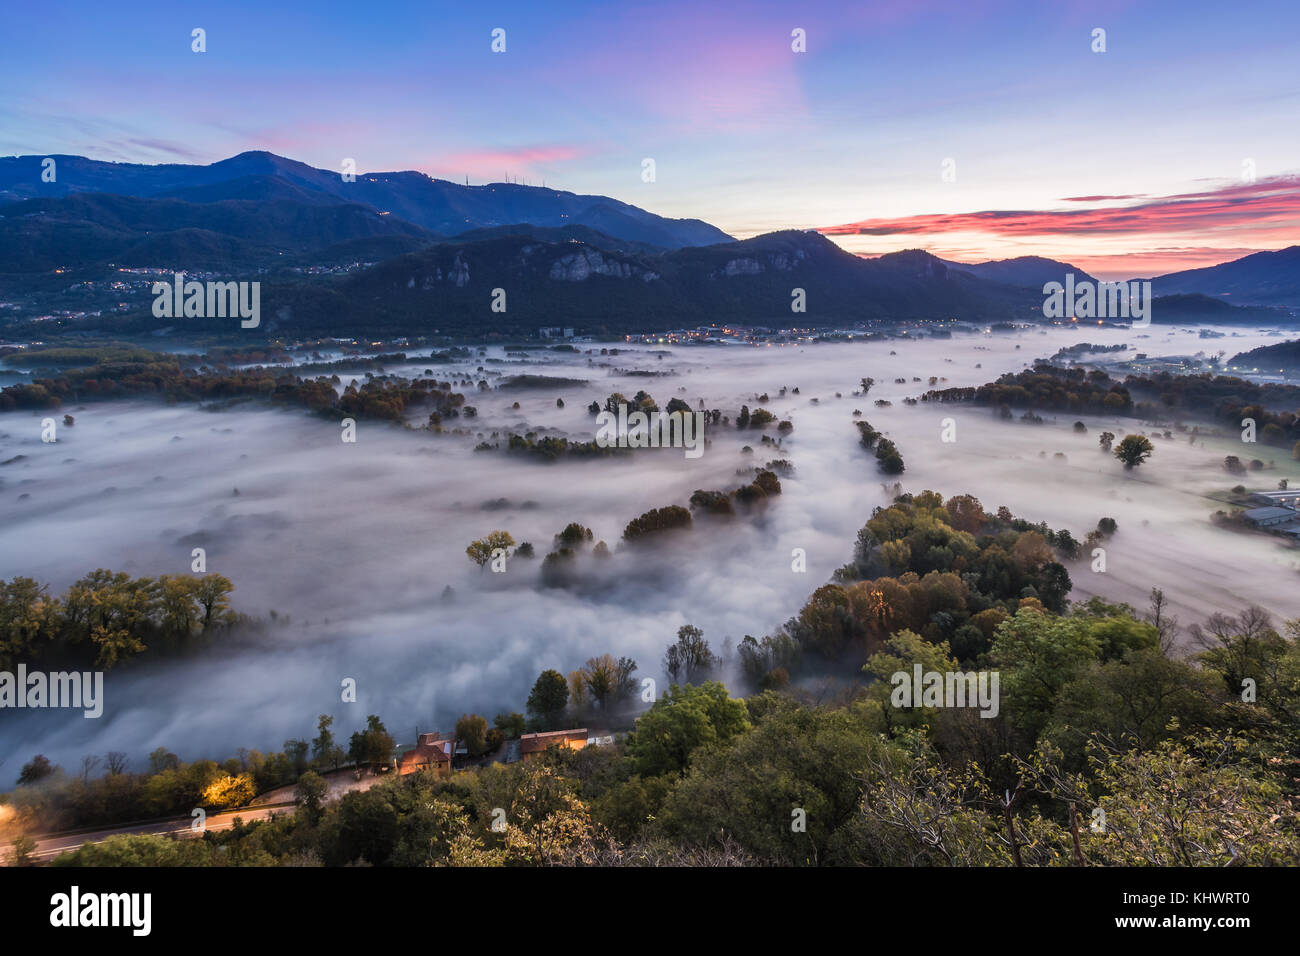 On the banks of the river Adda ,Airuno, province of Lecco, Italy Stock Photo